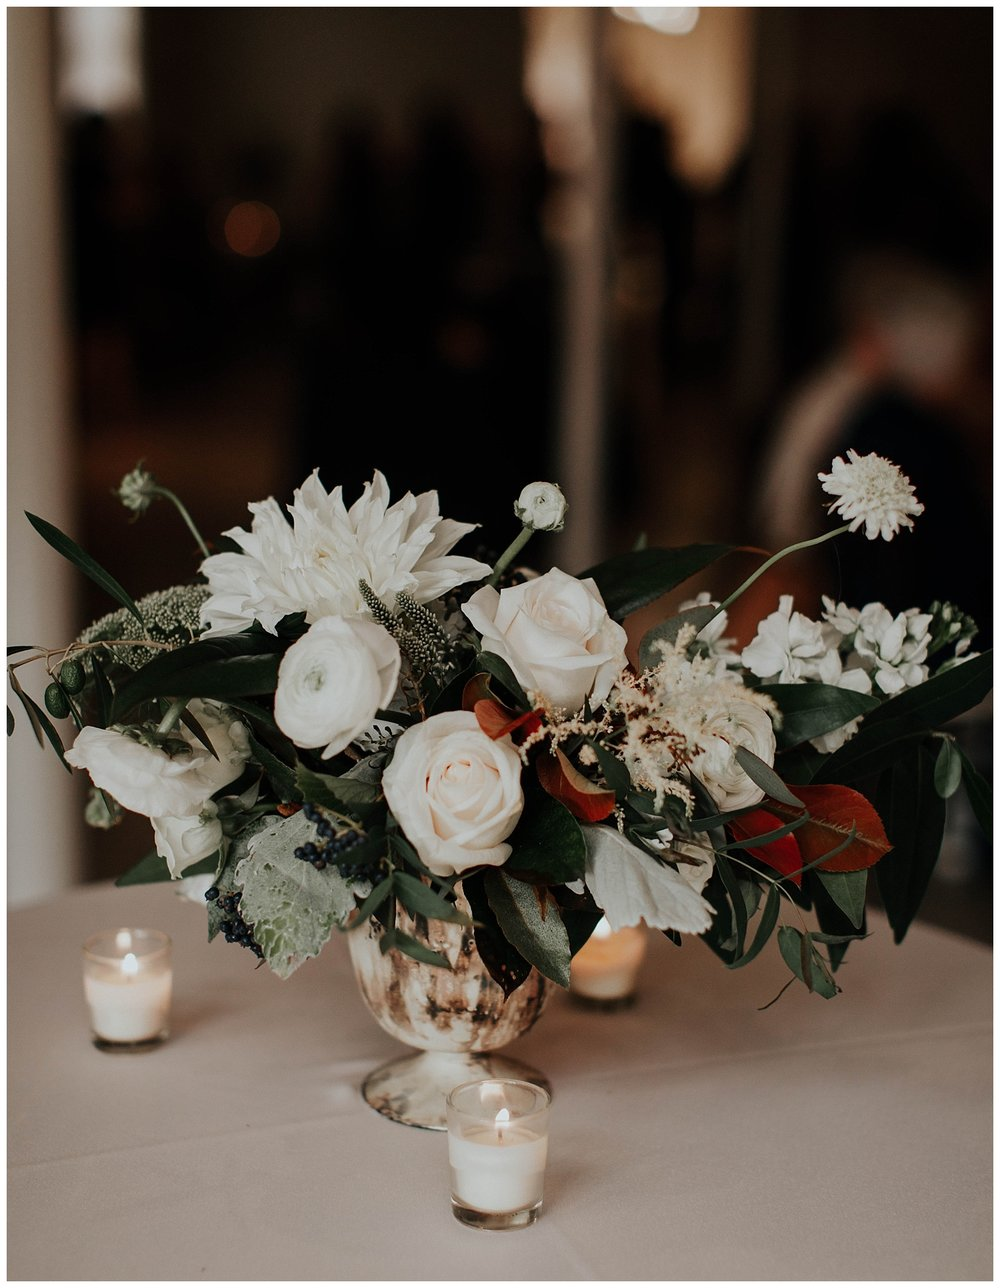 Madalynn Young Photography | Sarah Catherine + Will | Bridge Street Gallery and Loft | Atlanta Wedding Photographer_0391.jpg